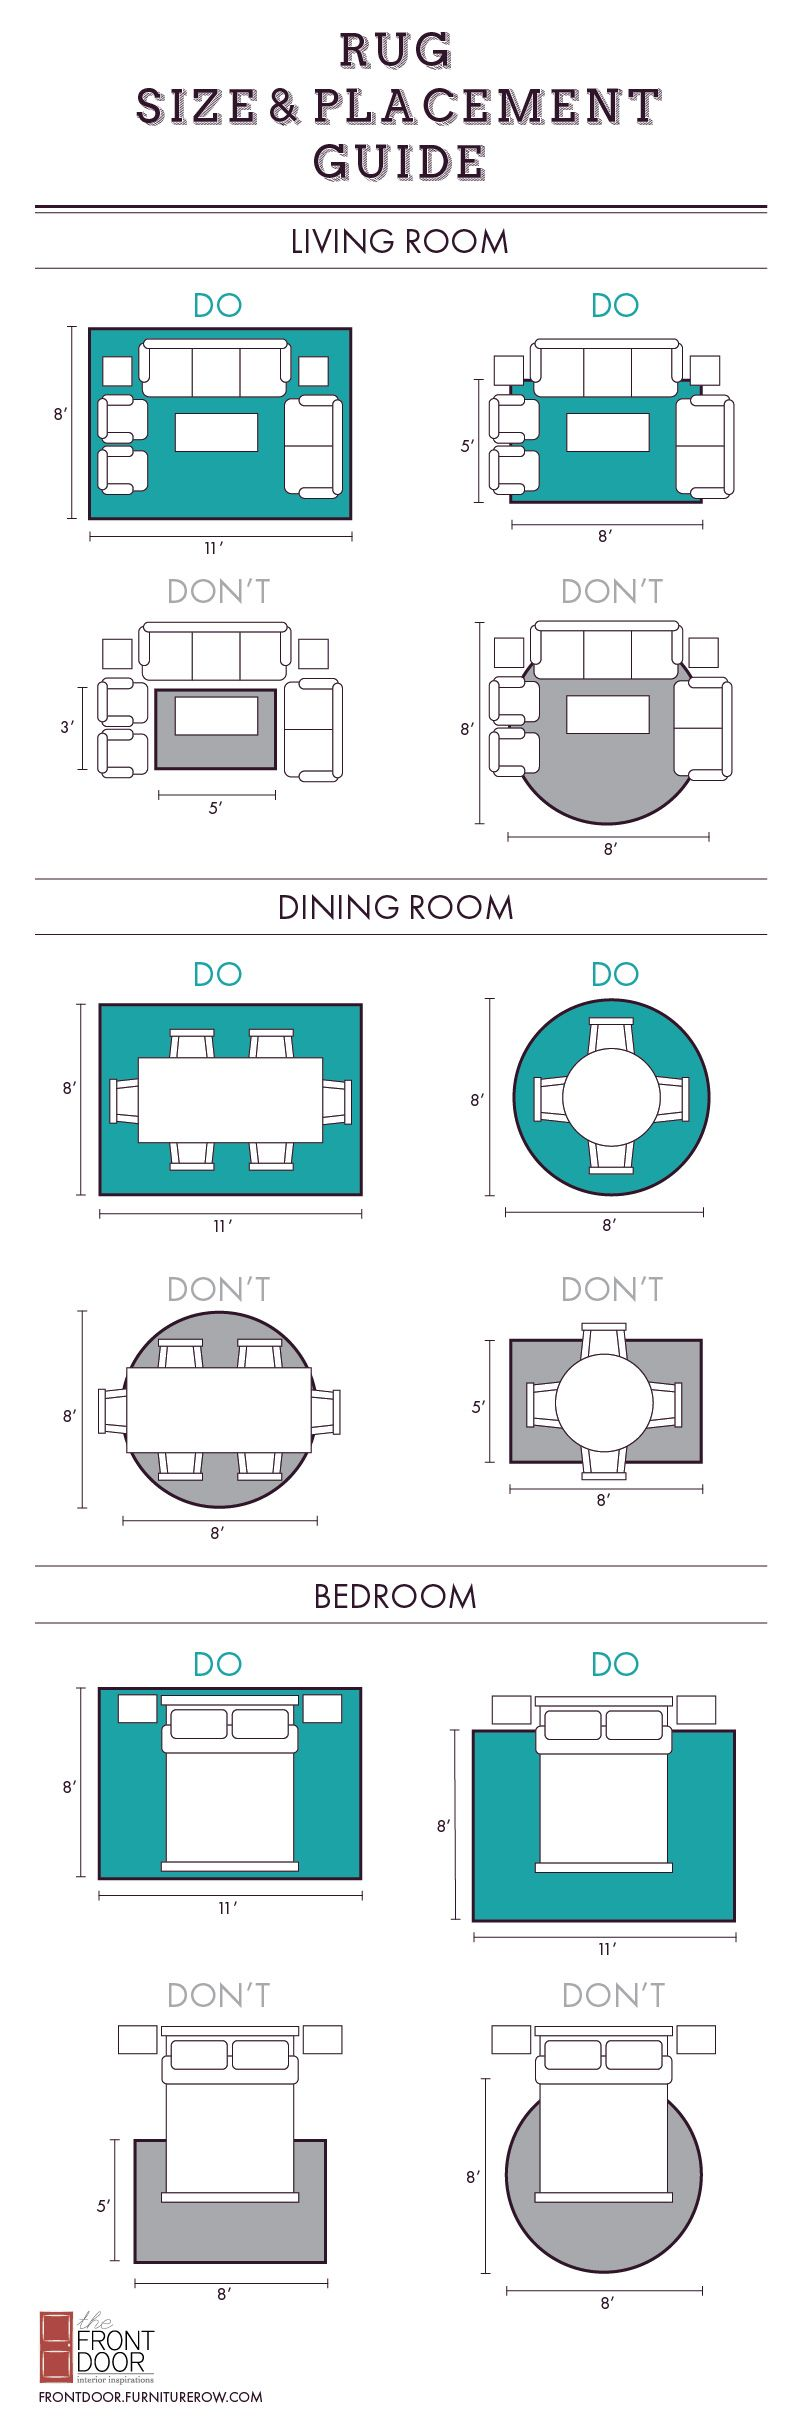 size of a living room spaces rug and placement guide front door blog the printable area on rugs